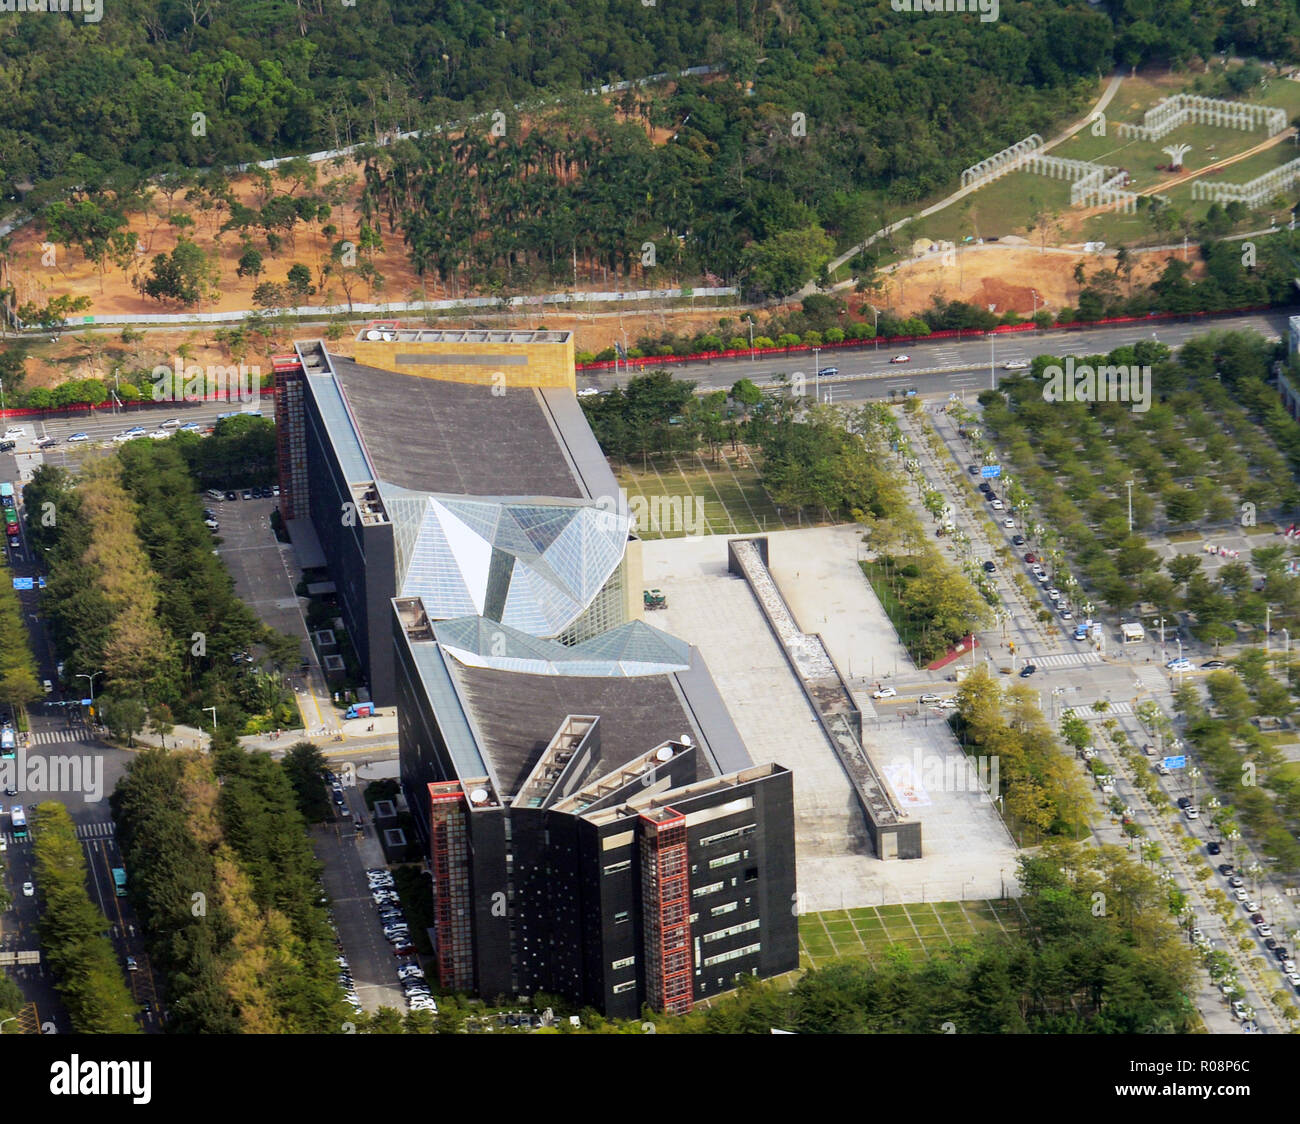 Aerial view of the Shenzhen Library in Futian, Shenzhen. - Stock Image